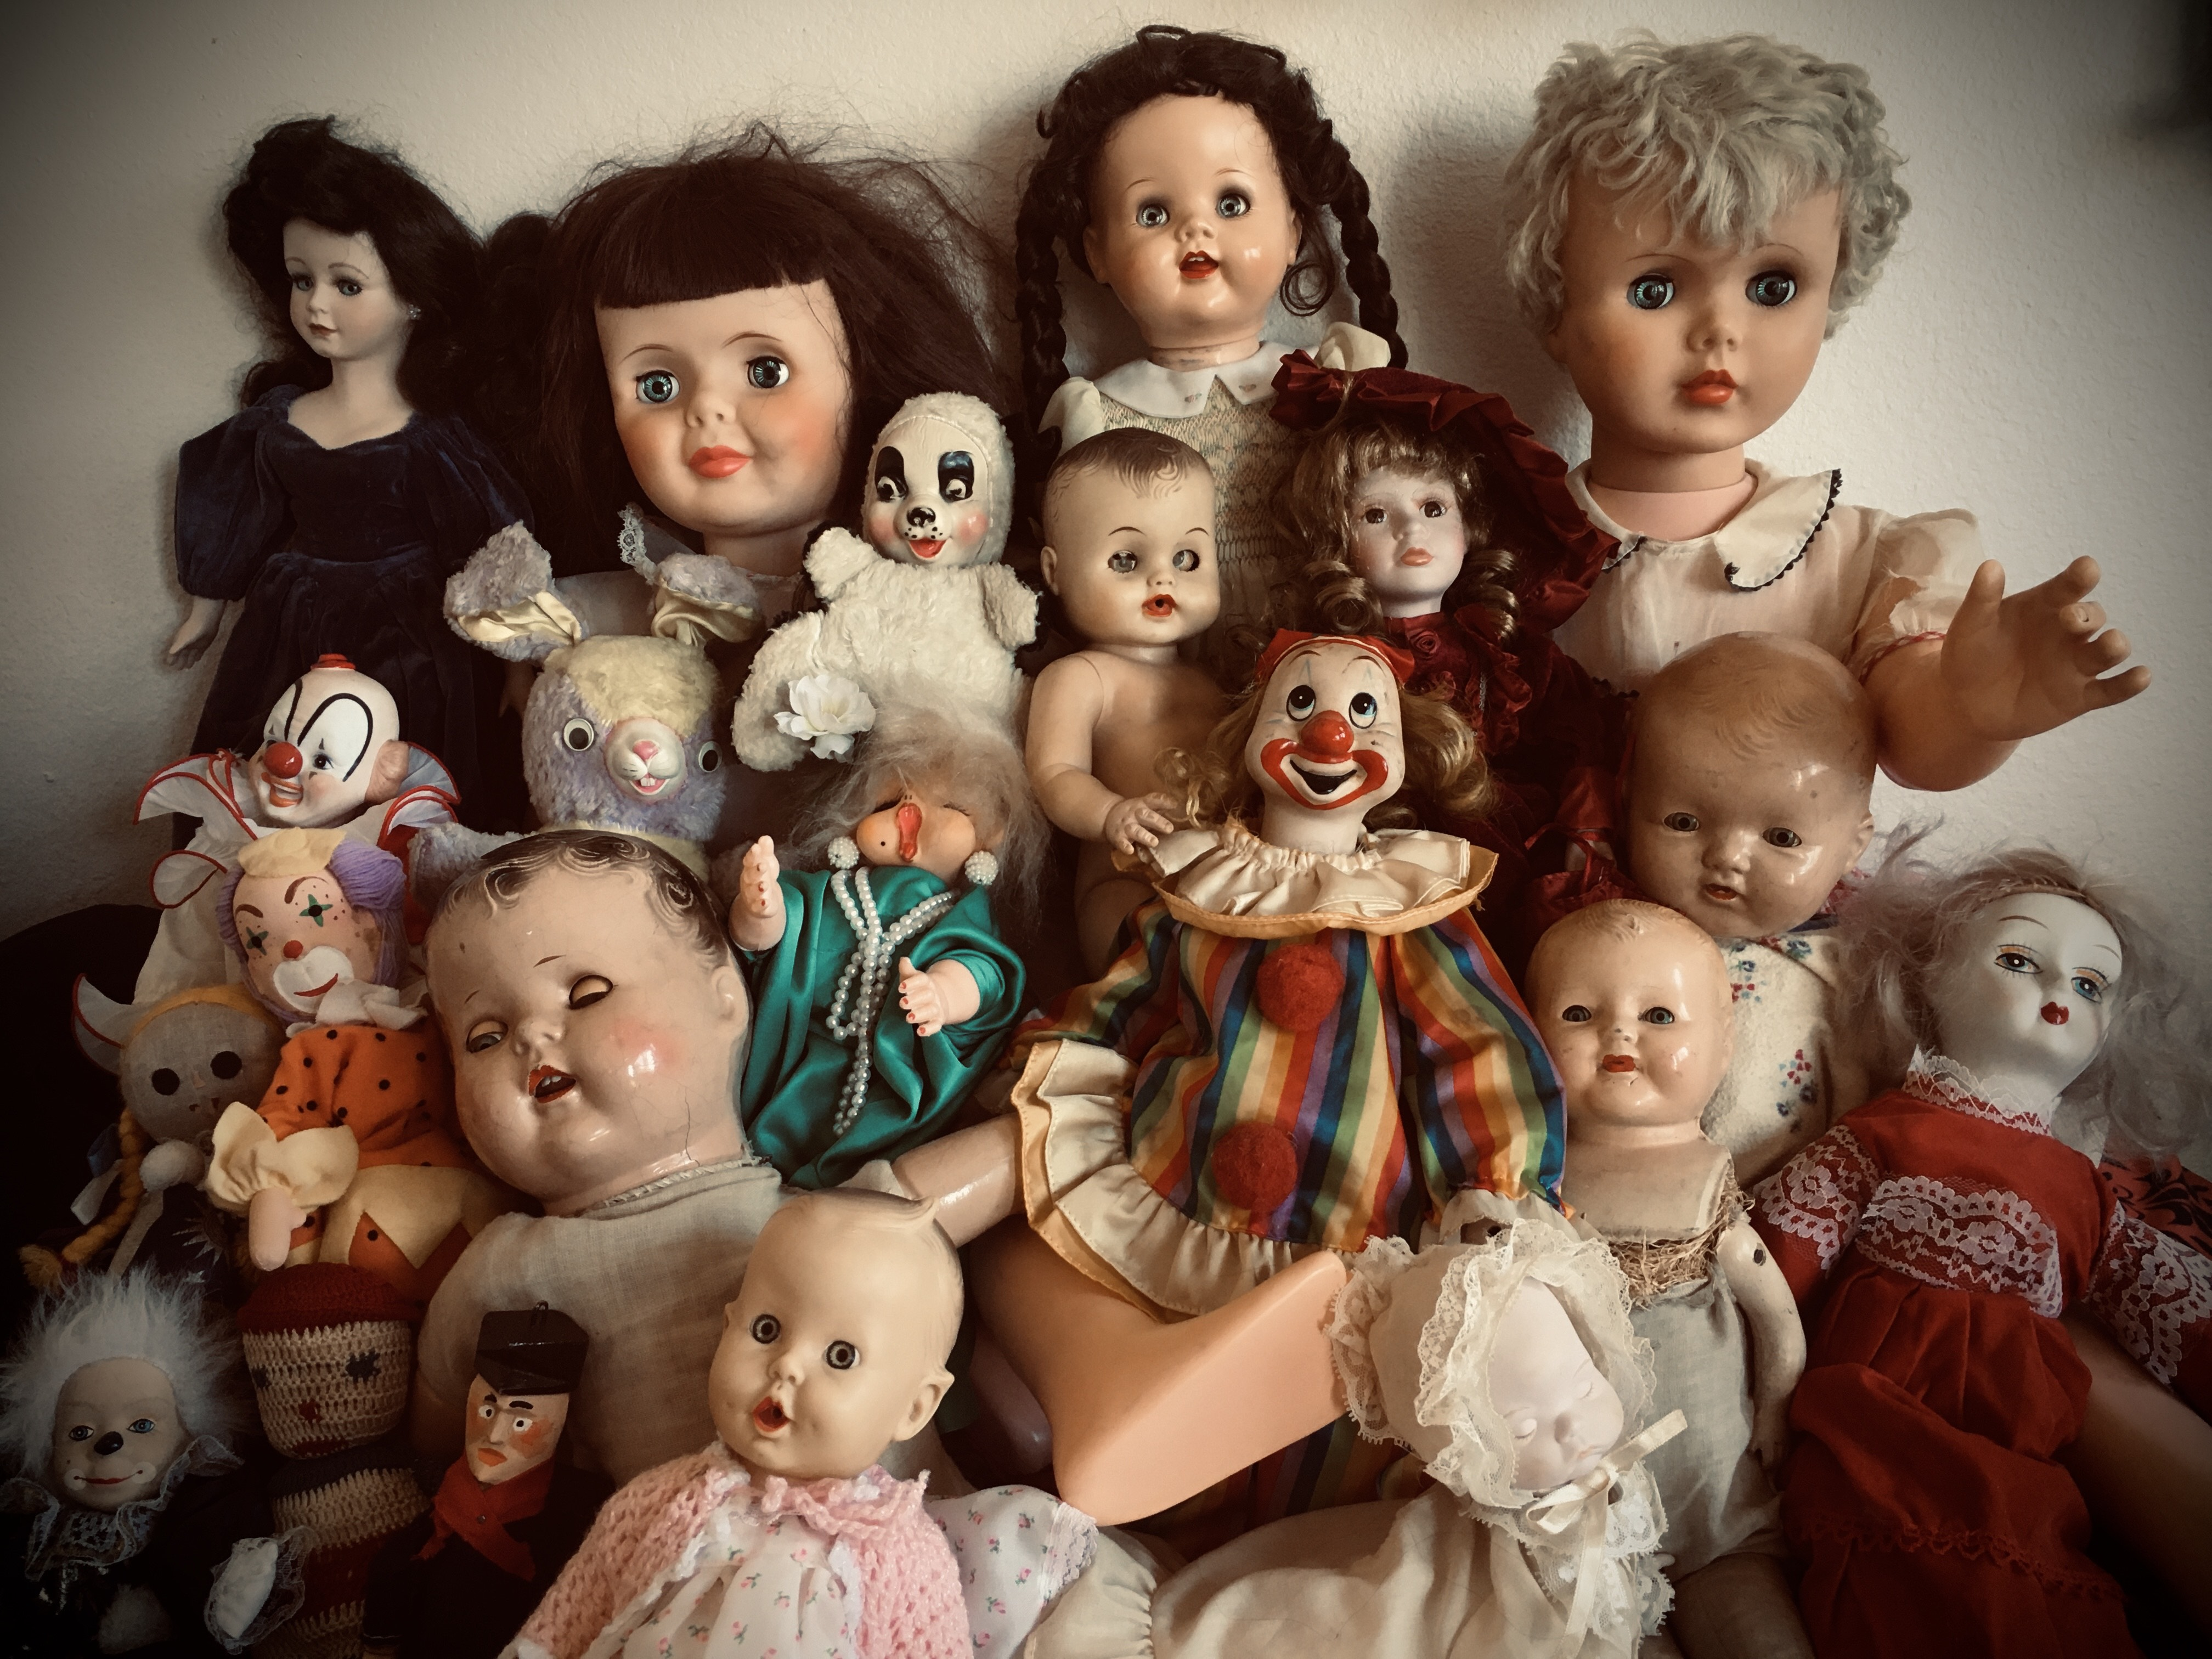 IMAGE: Courtesy of Unsettling Toys.